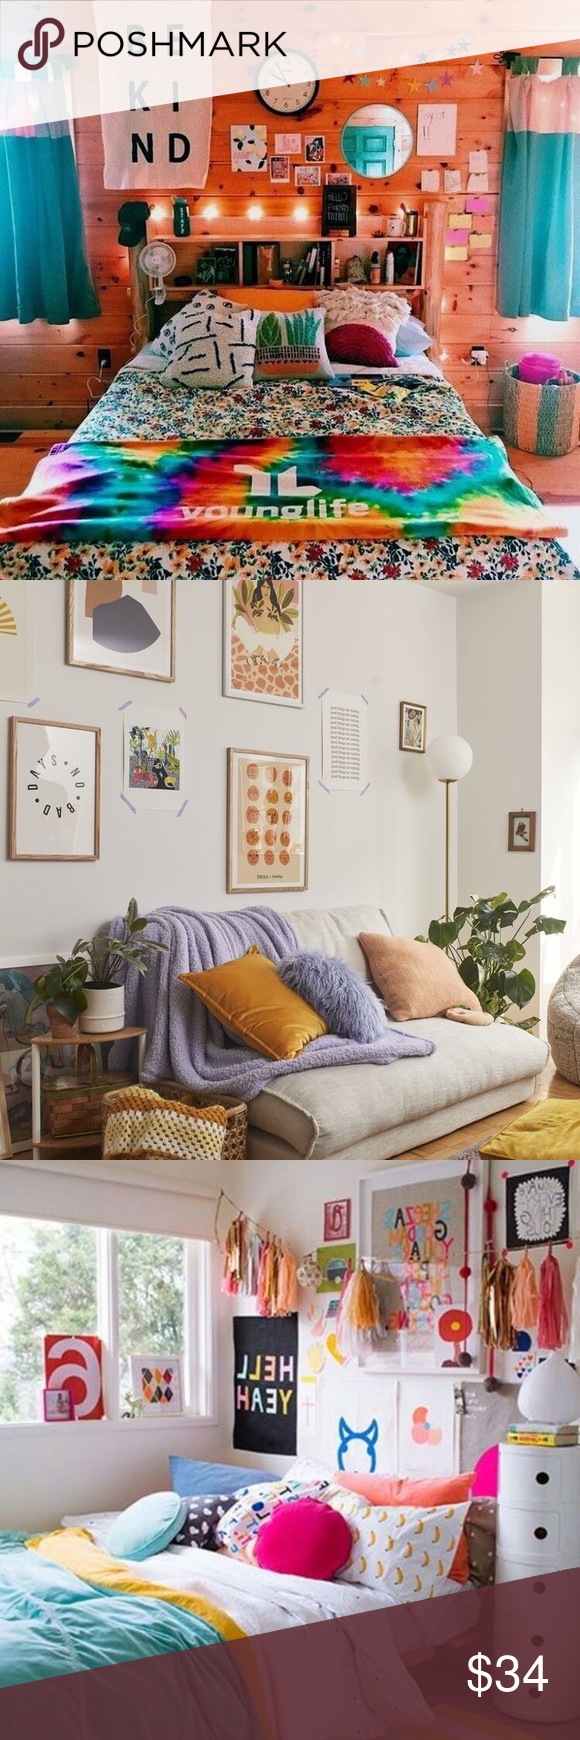 VSCO BEDROOM MYSTERY BOX! 10 piece Looking to give your room a makeover without